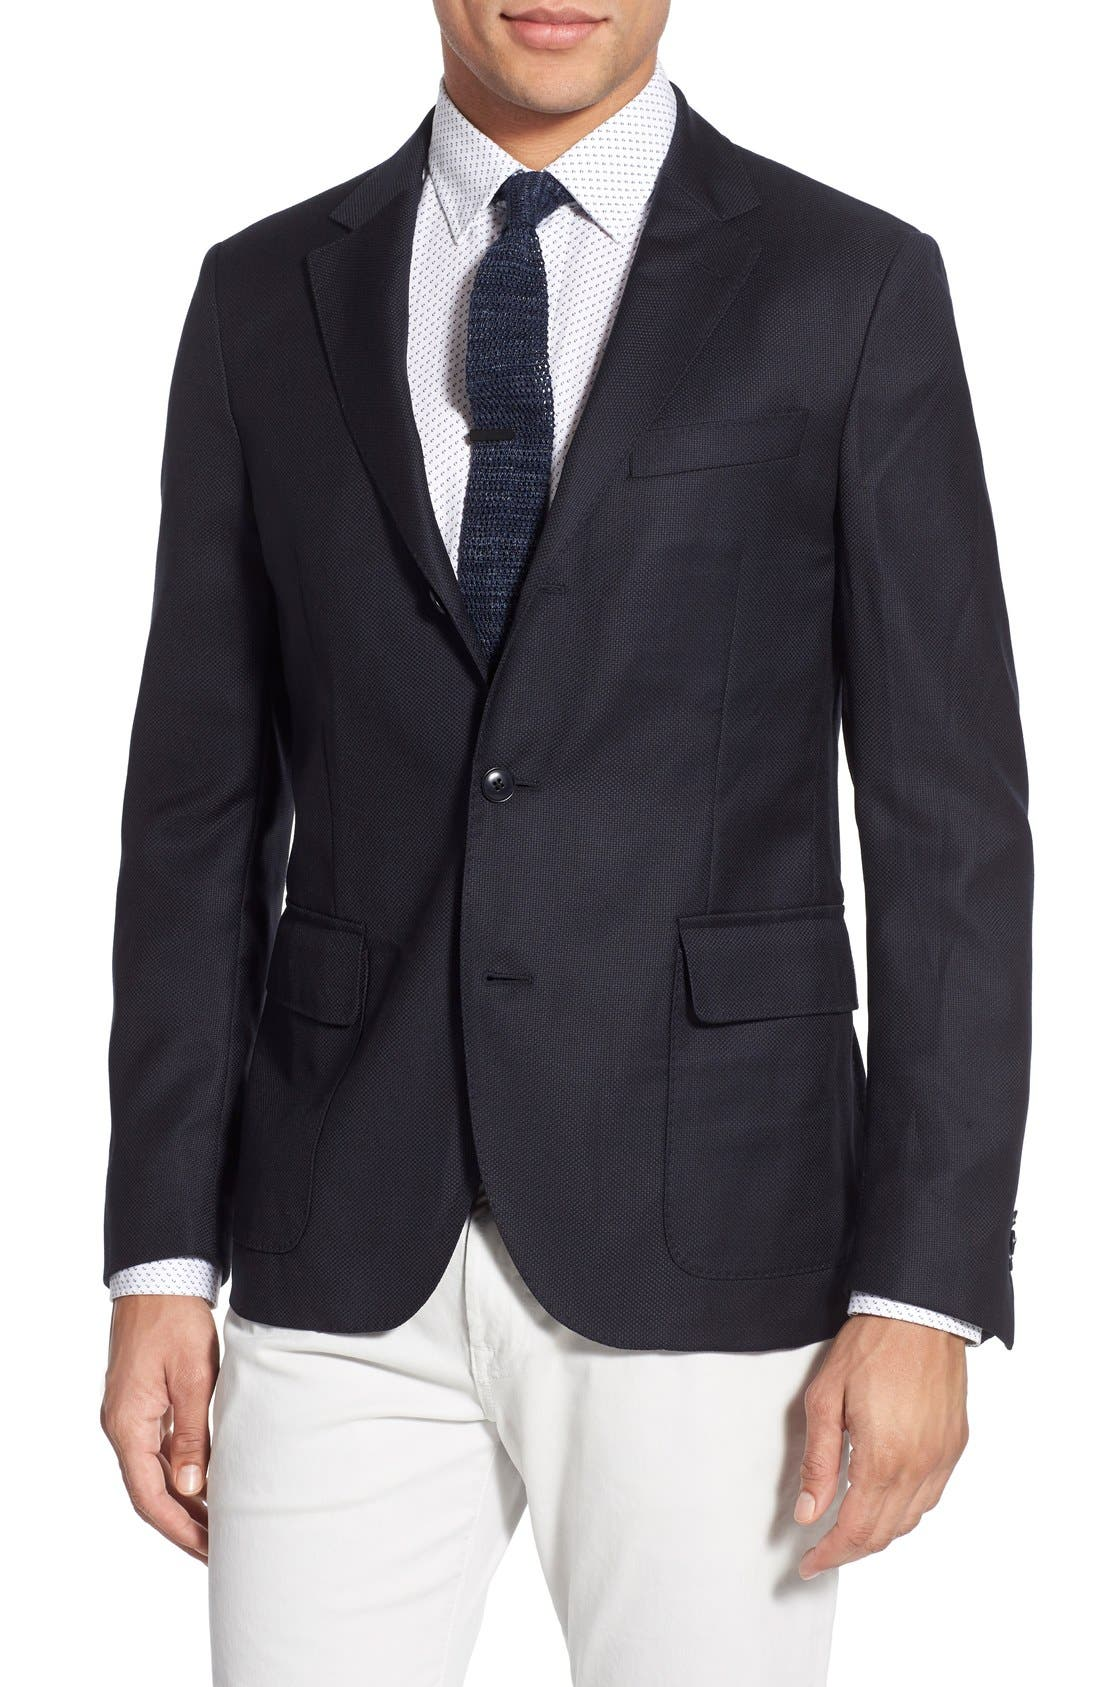 GANT 'Hopsack' Trim Fit Wool Sport Coat